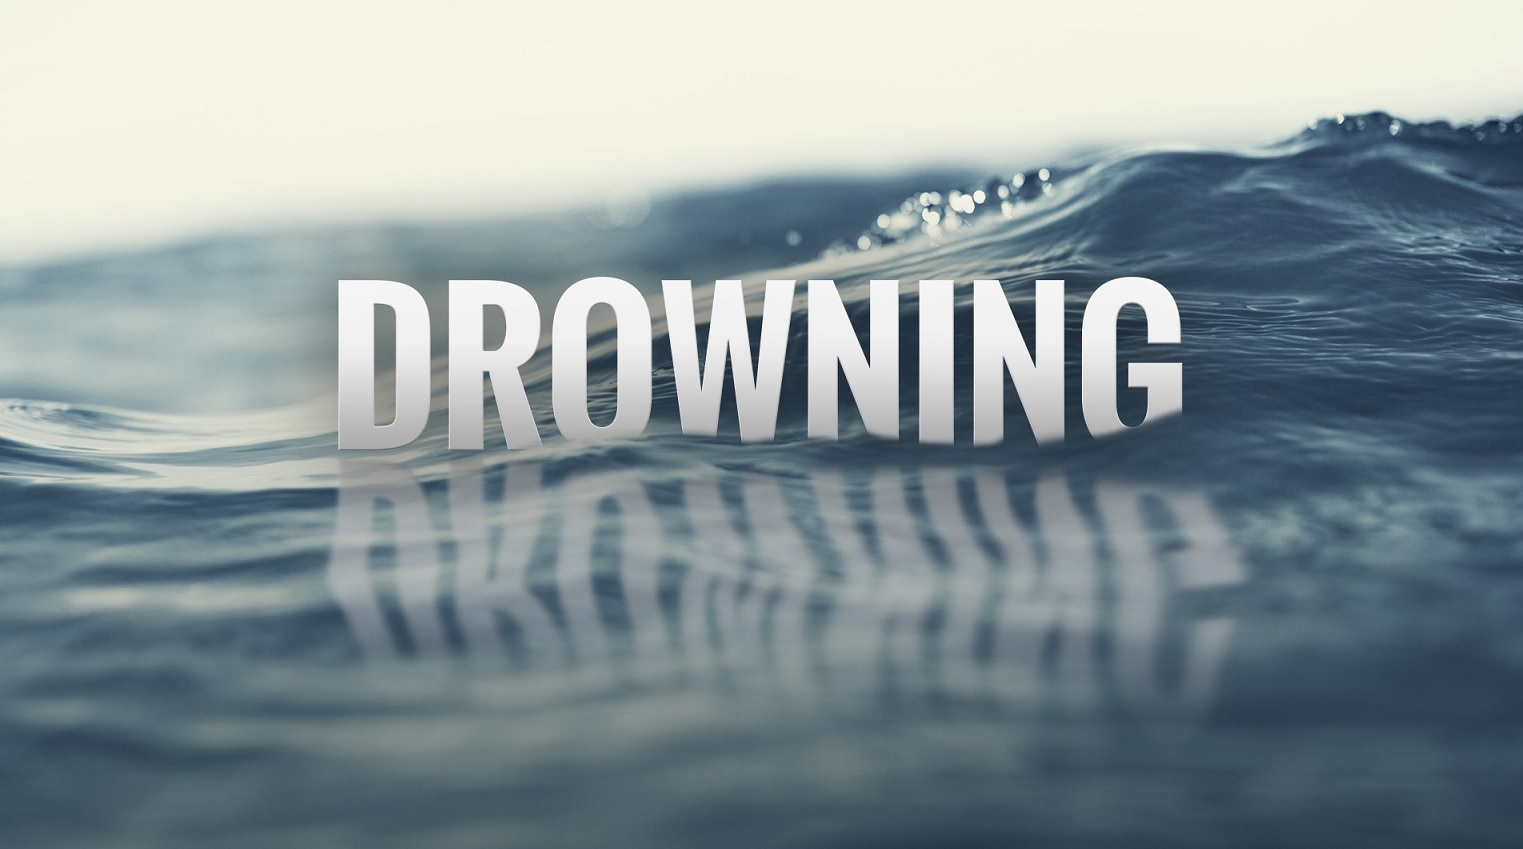 drowning_416988